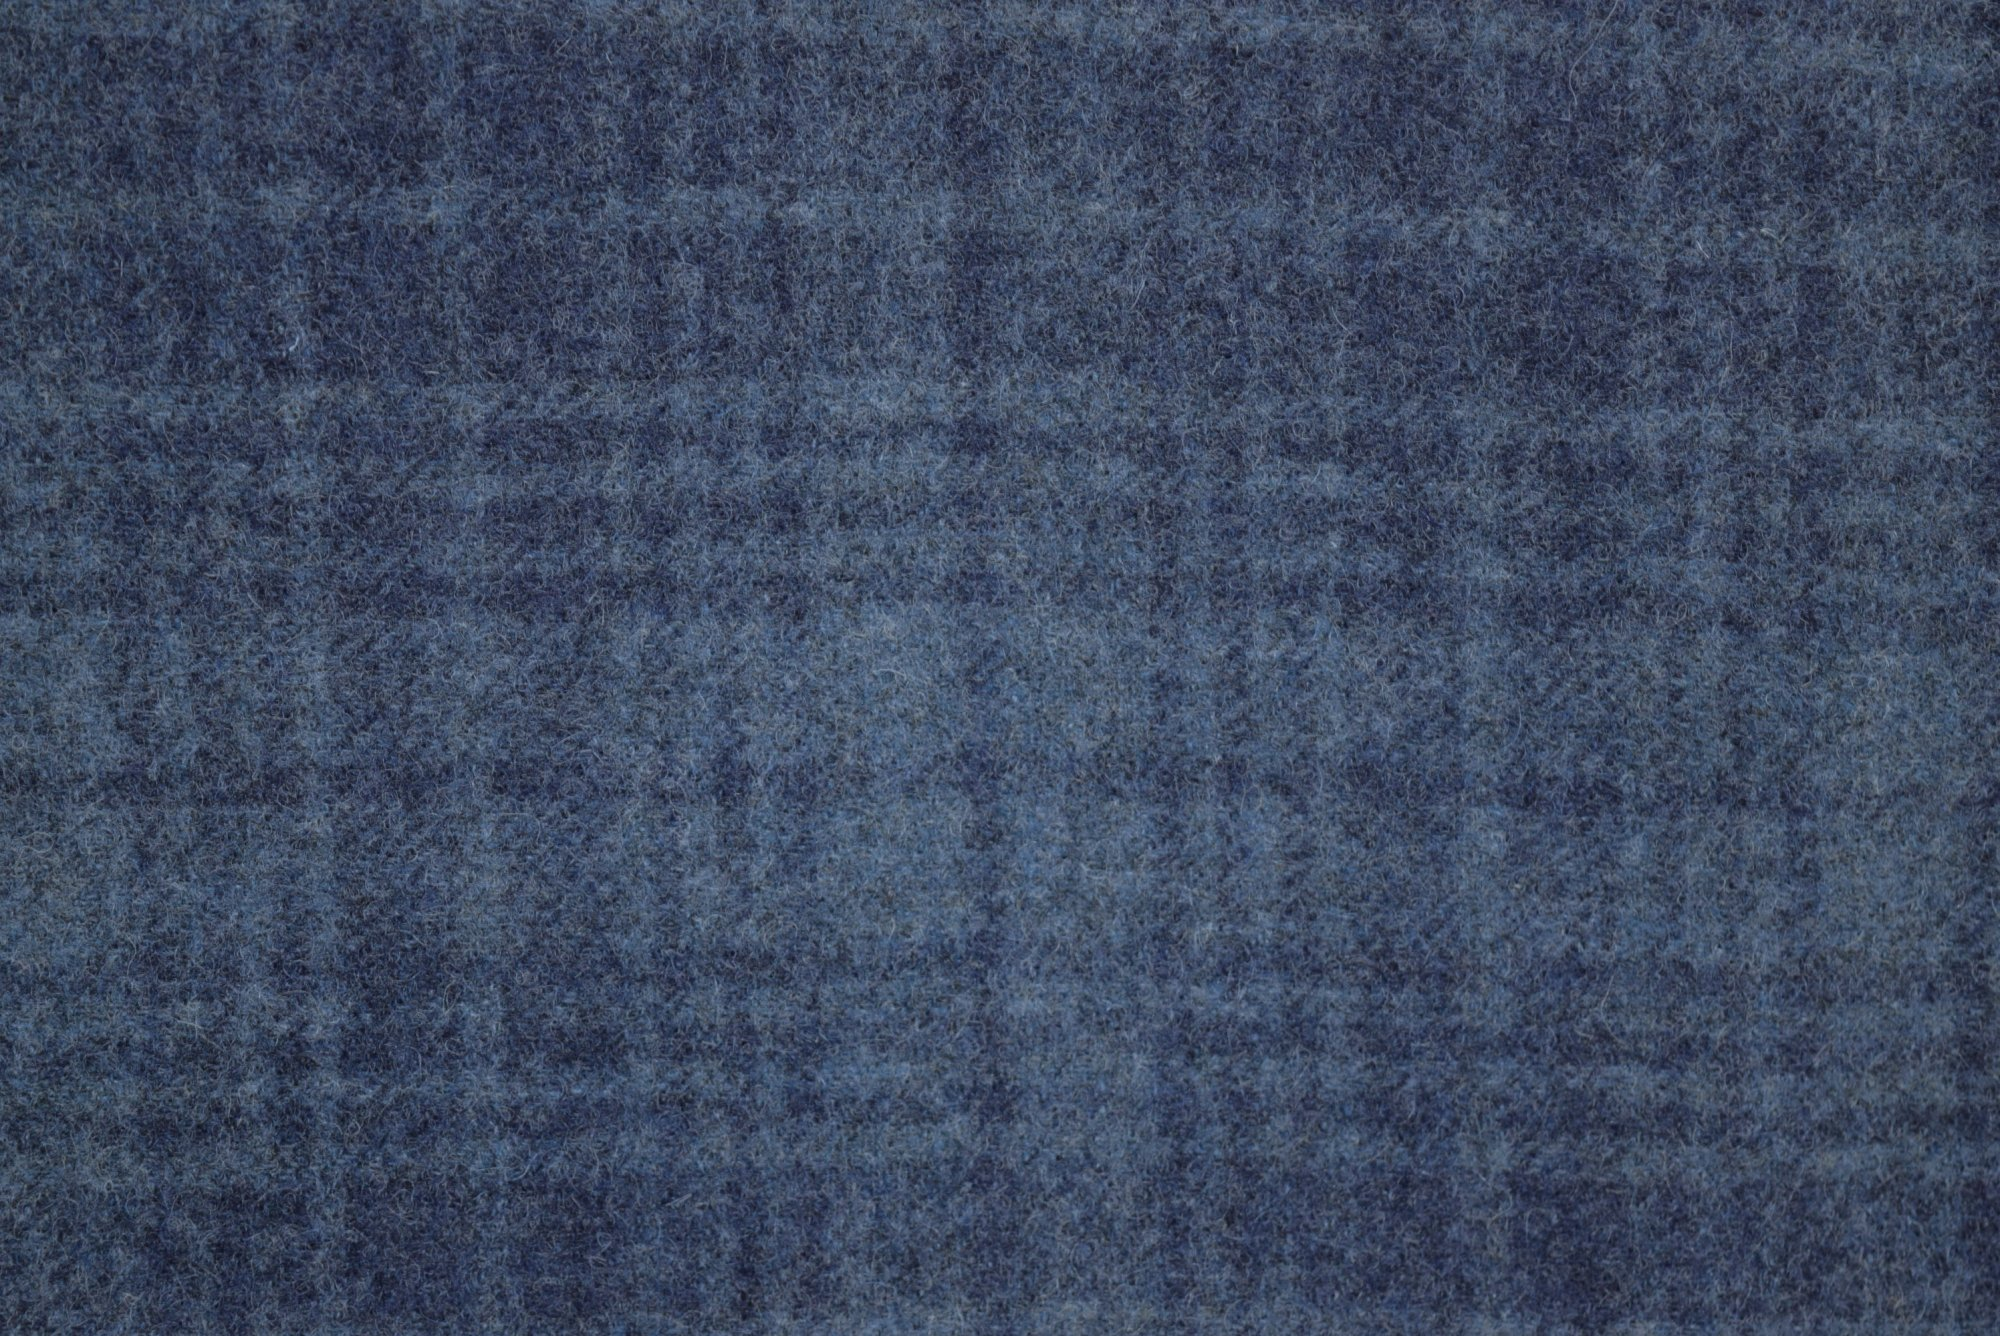 Blueberry Pie  9 X 14  100% Wool